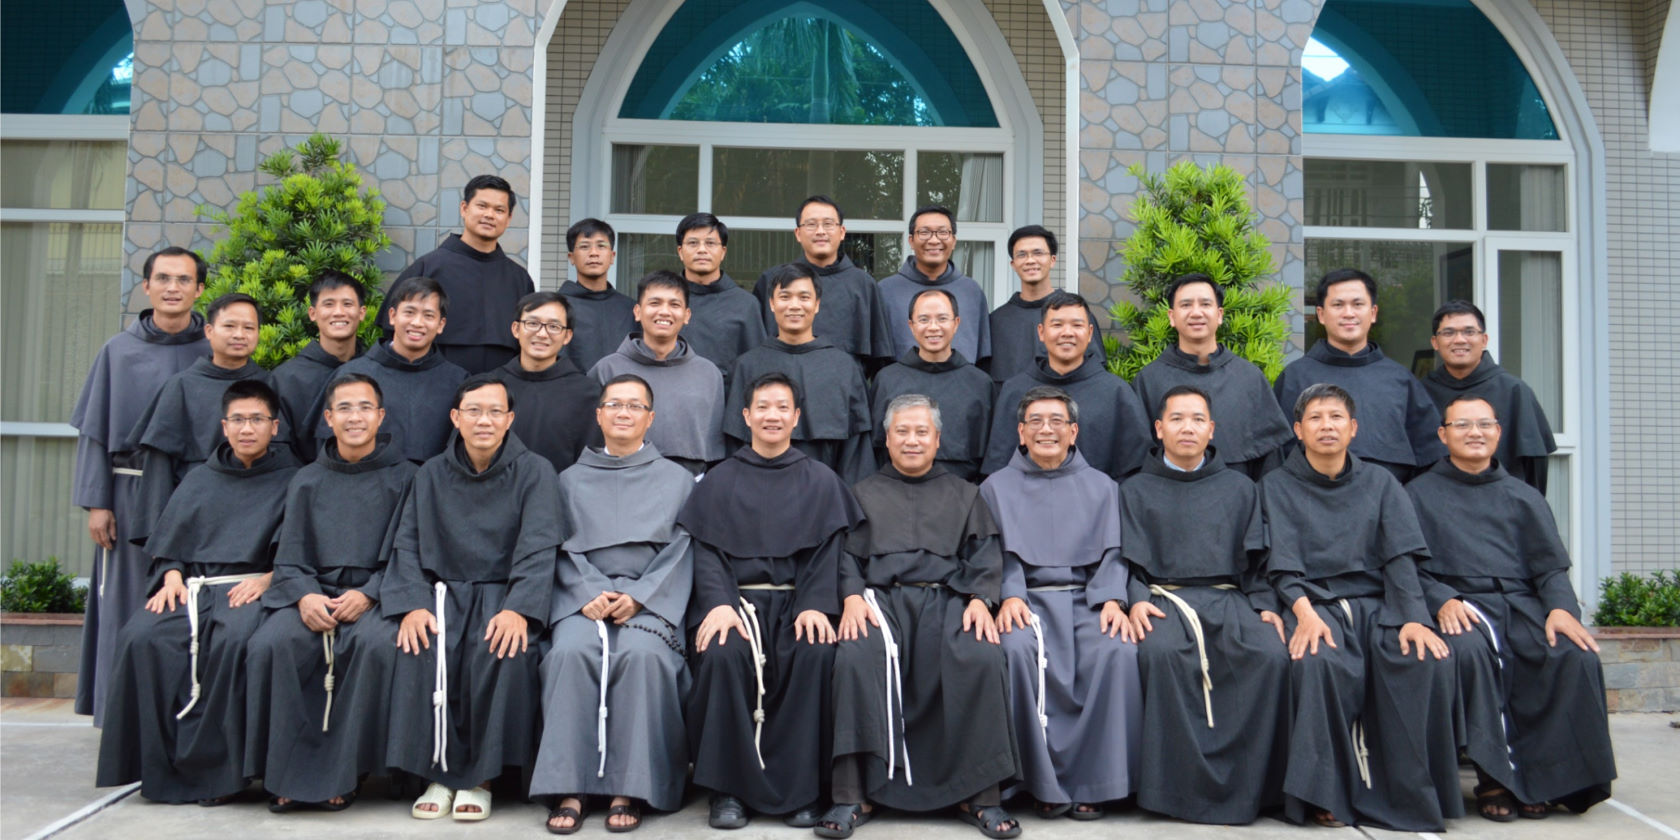 Our Vietnam Friars